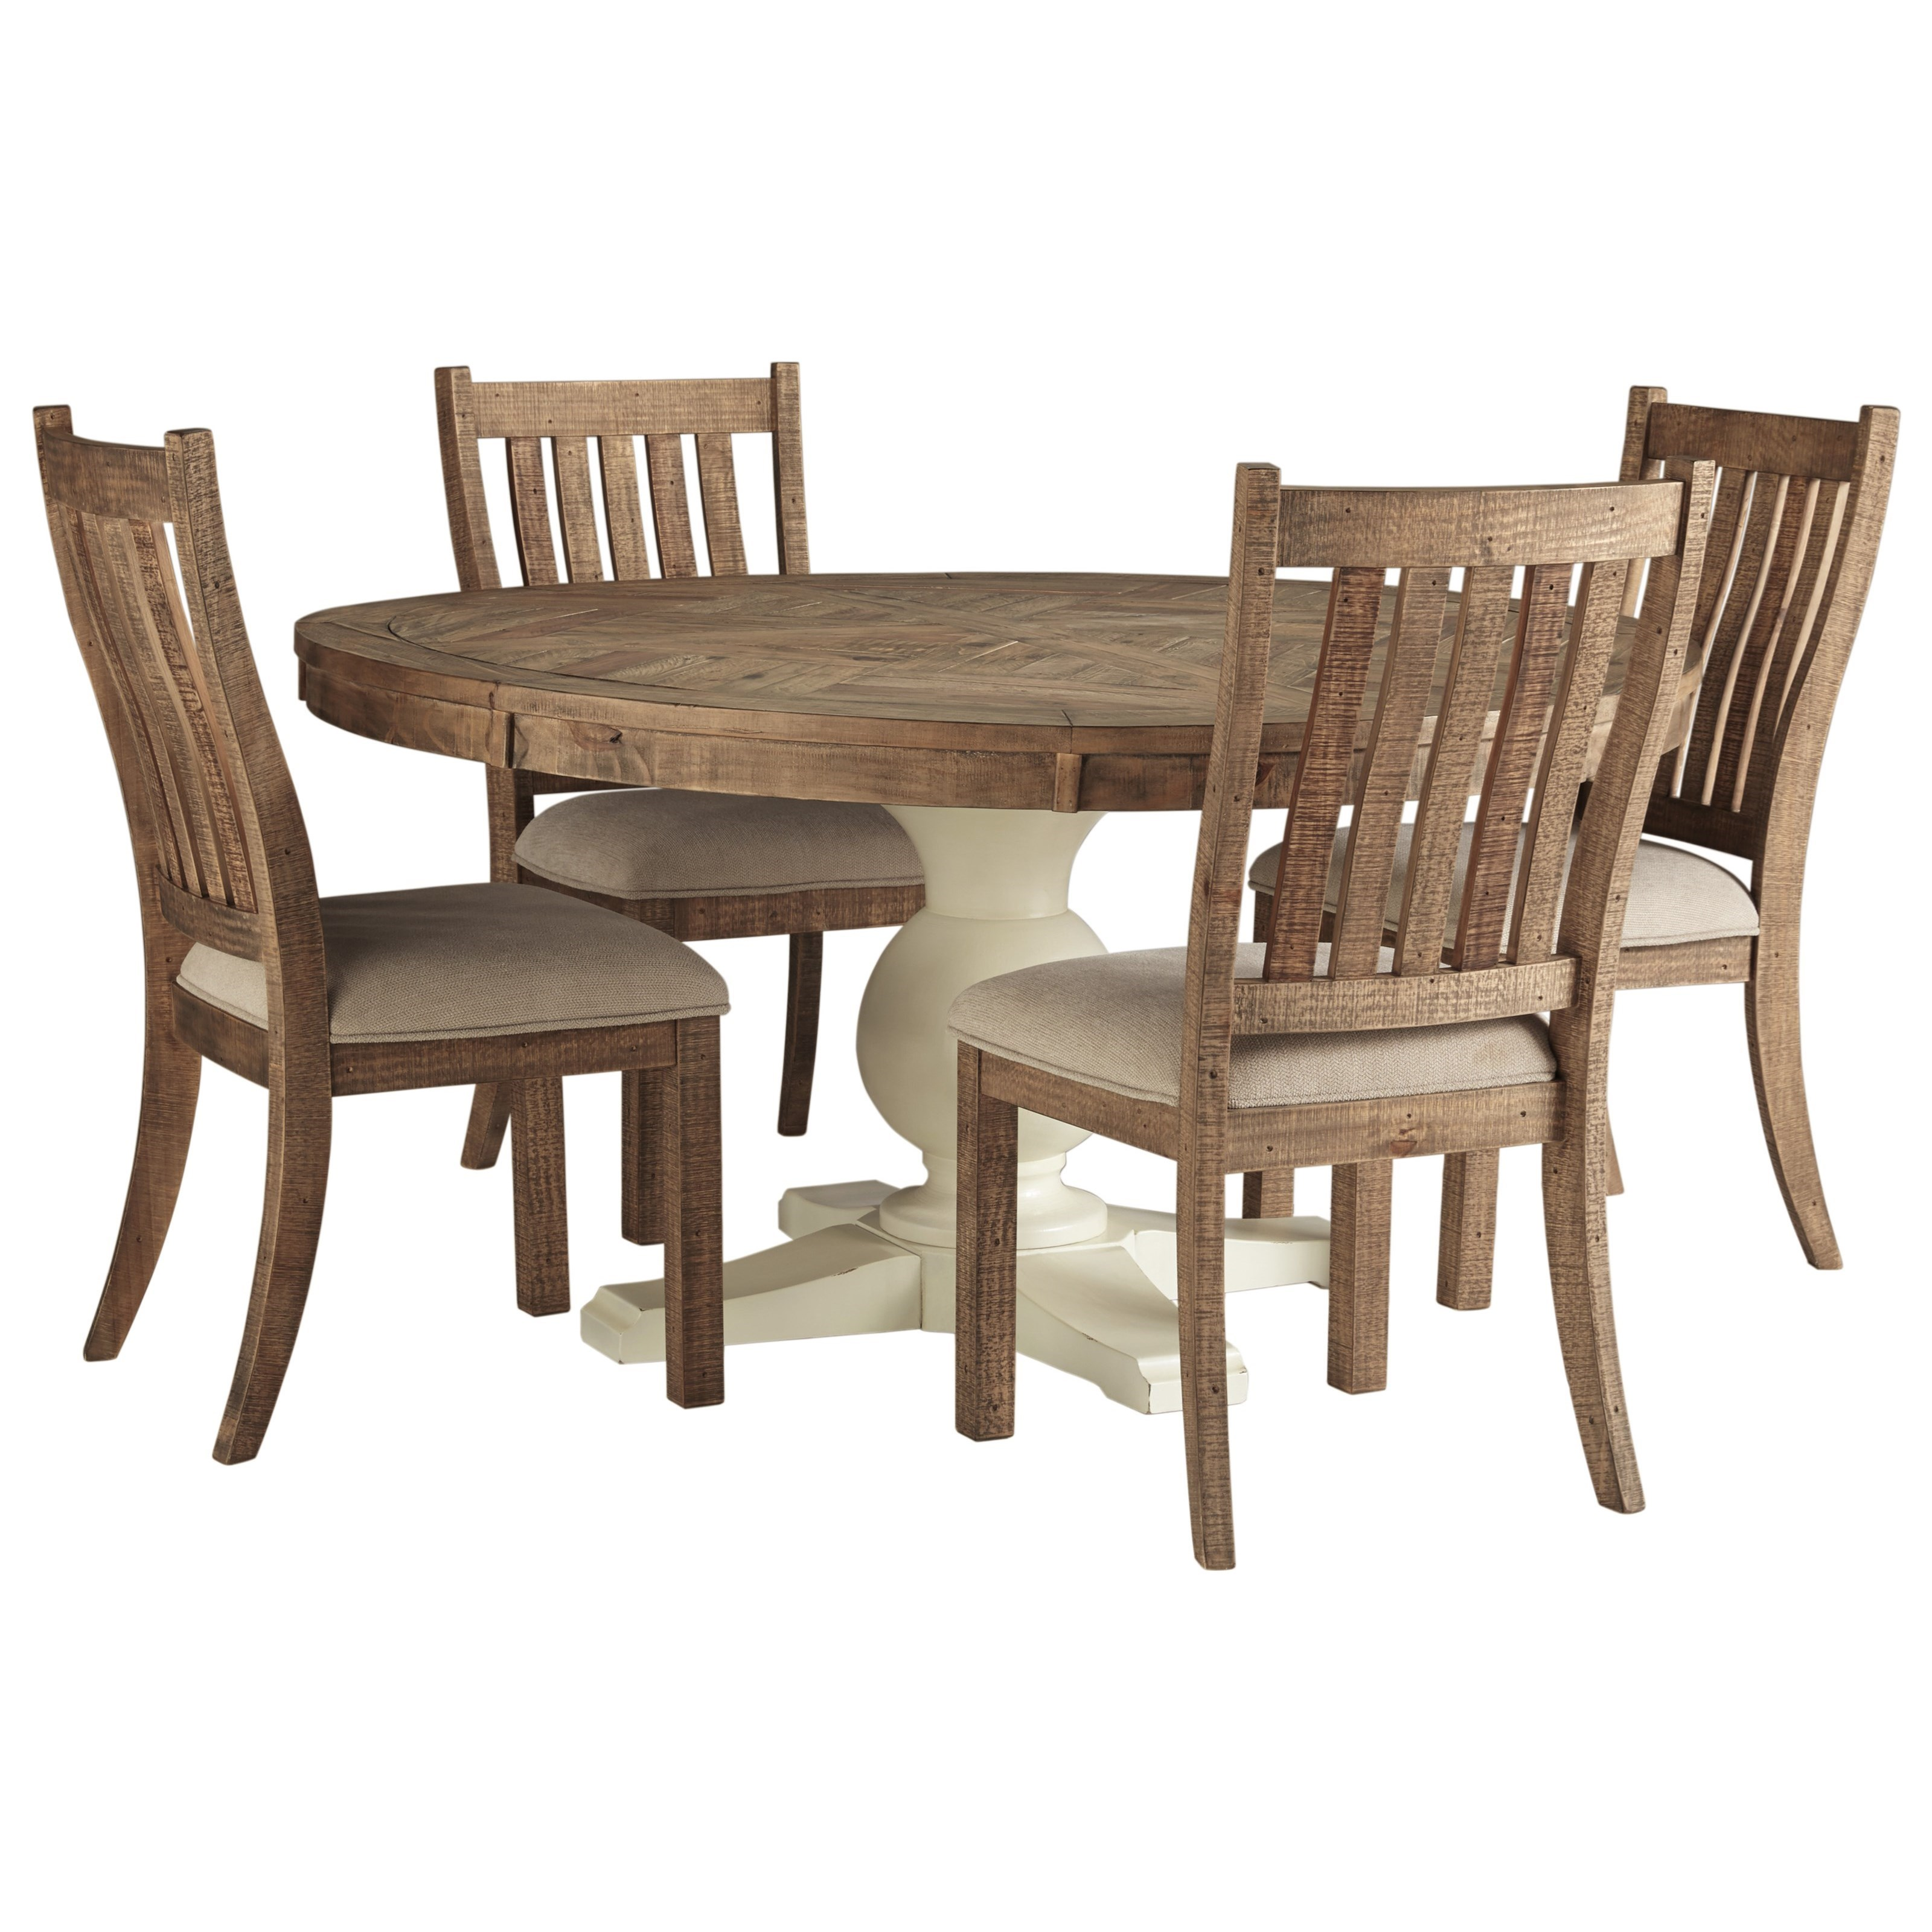 Grindleburg 5 Piece Table and Chair Set by Signature Design by Ashley at Value City Furniture